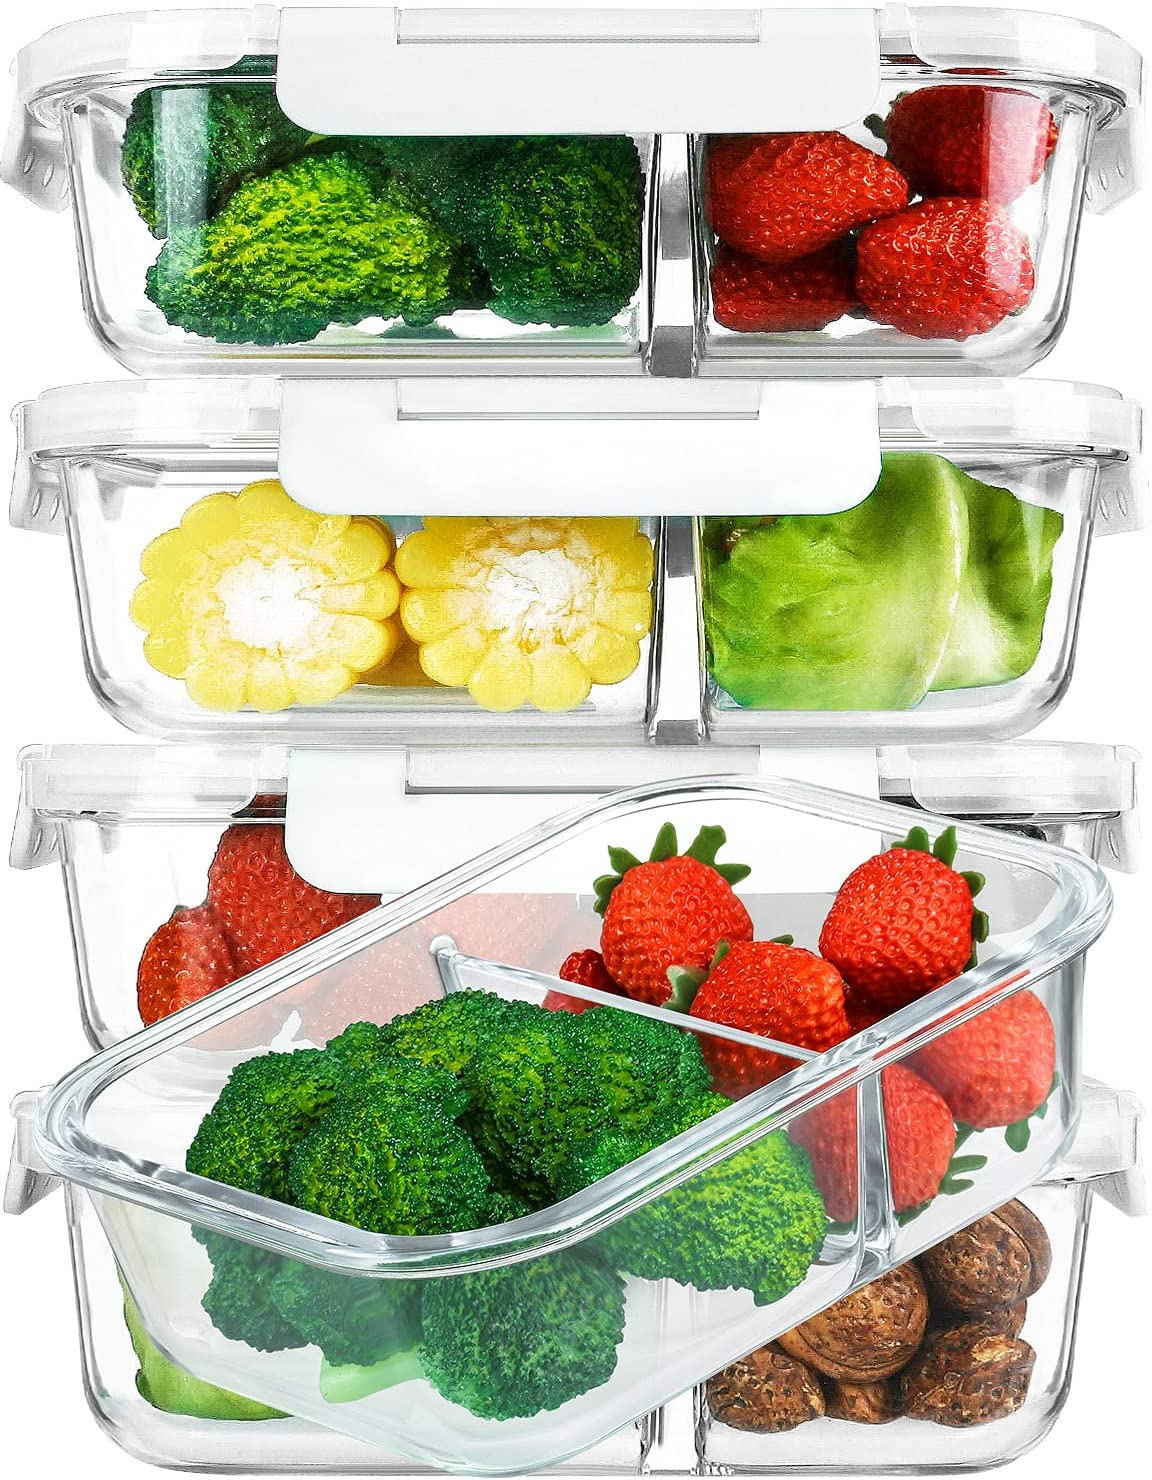 [5-Pack,36 Oz]Glass Meal Prep Containers 2 Compartments Portion Control with Upgraded Snap Locking Lids Glass Food Storage Containers, Microwave, Oven, Freezer and Dishwasher (4.5 Cups, White)